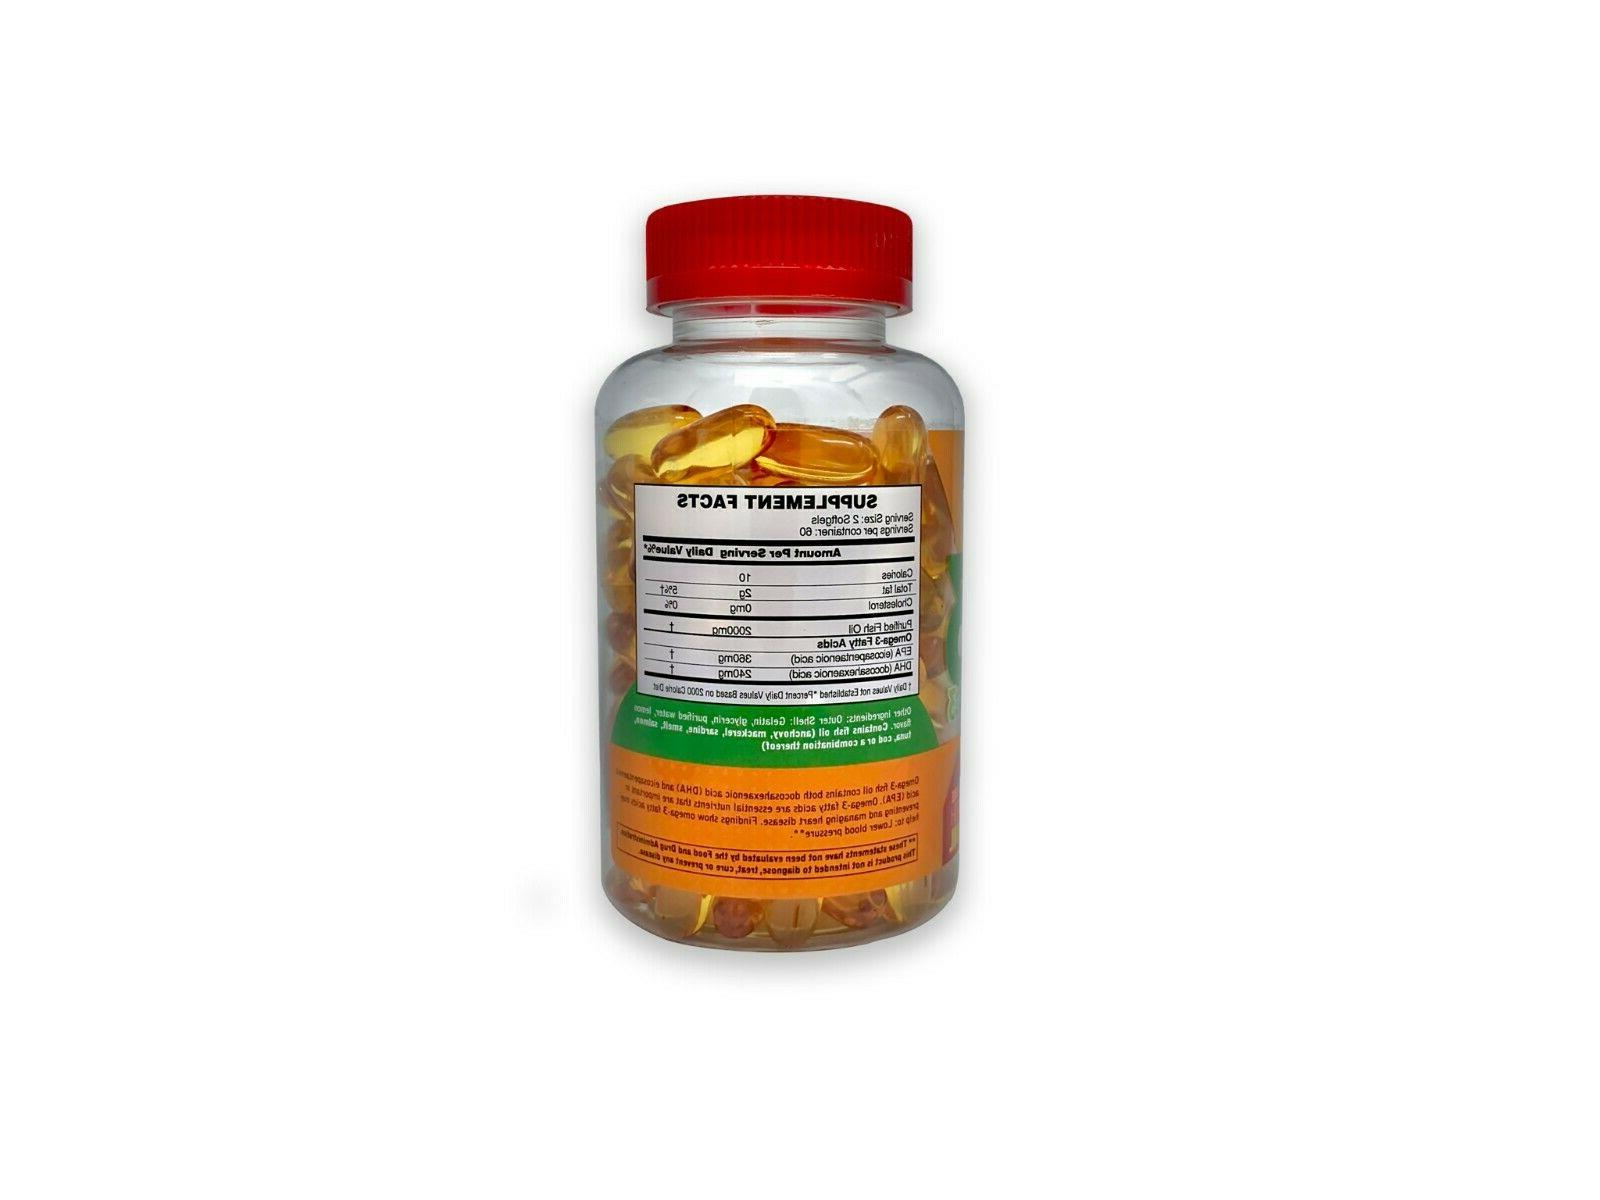 POWERS 3 Fish Oil Softgels High , 120 count